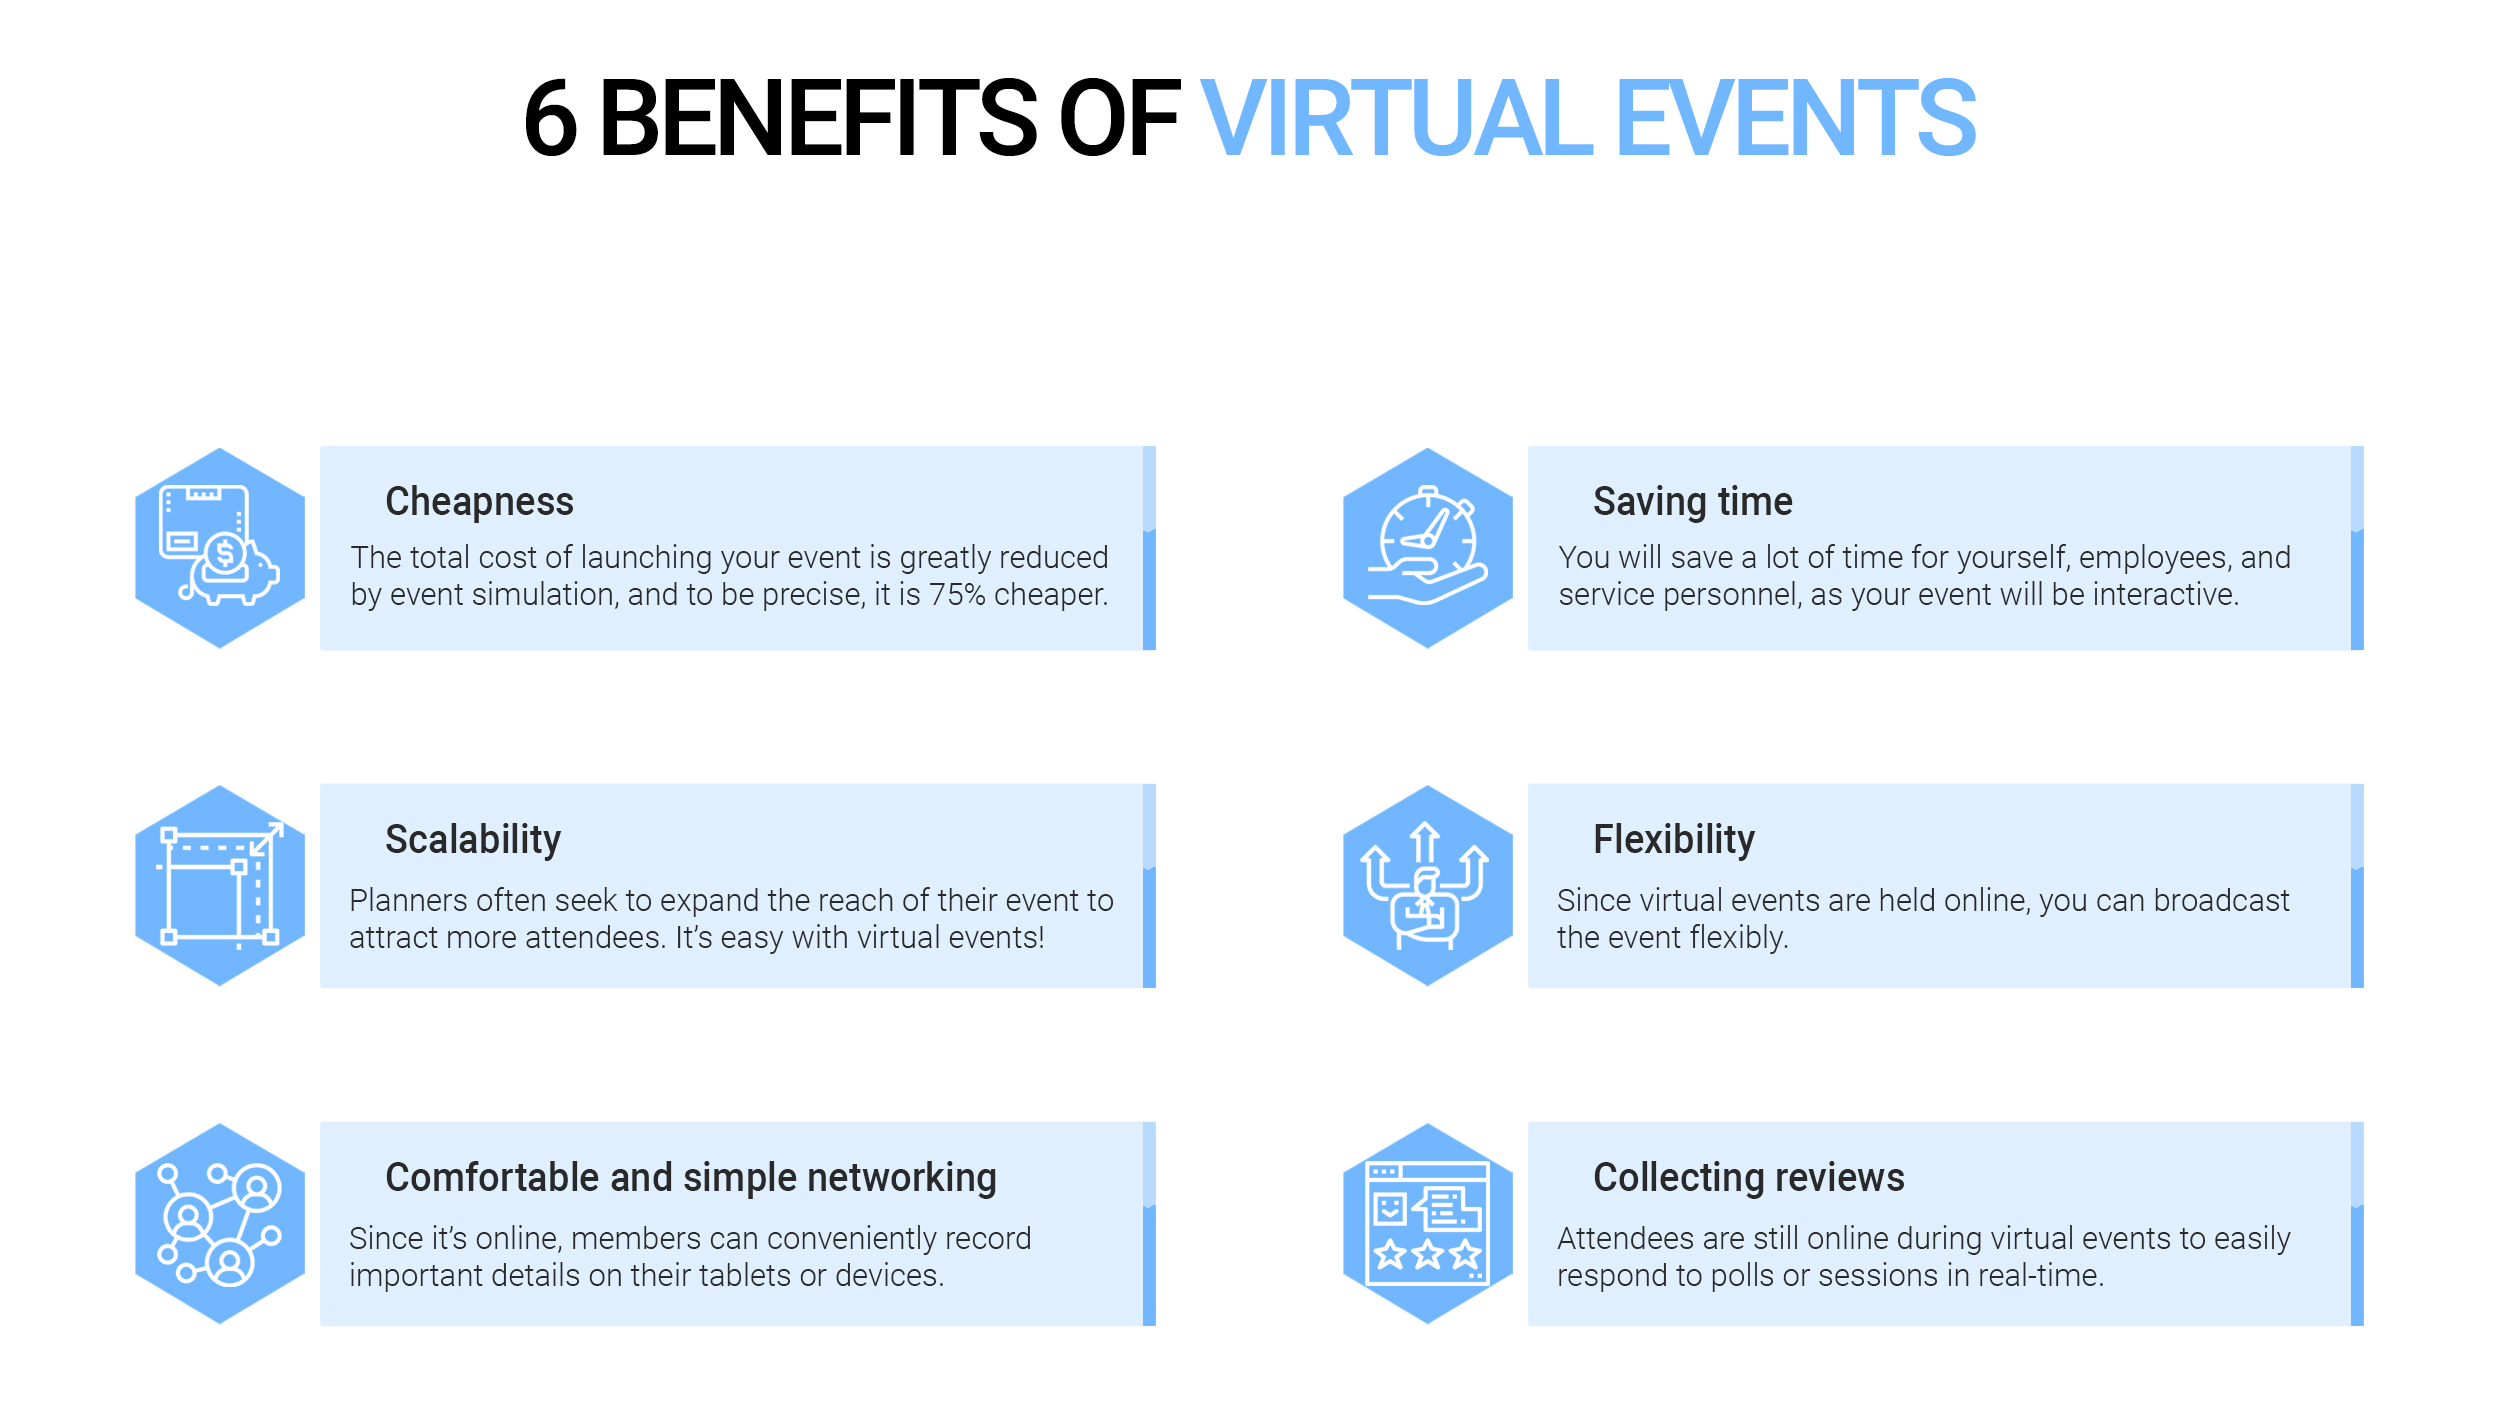 6 Benefits of Virtual Events